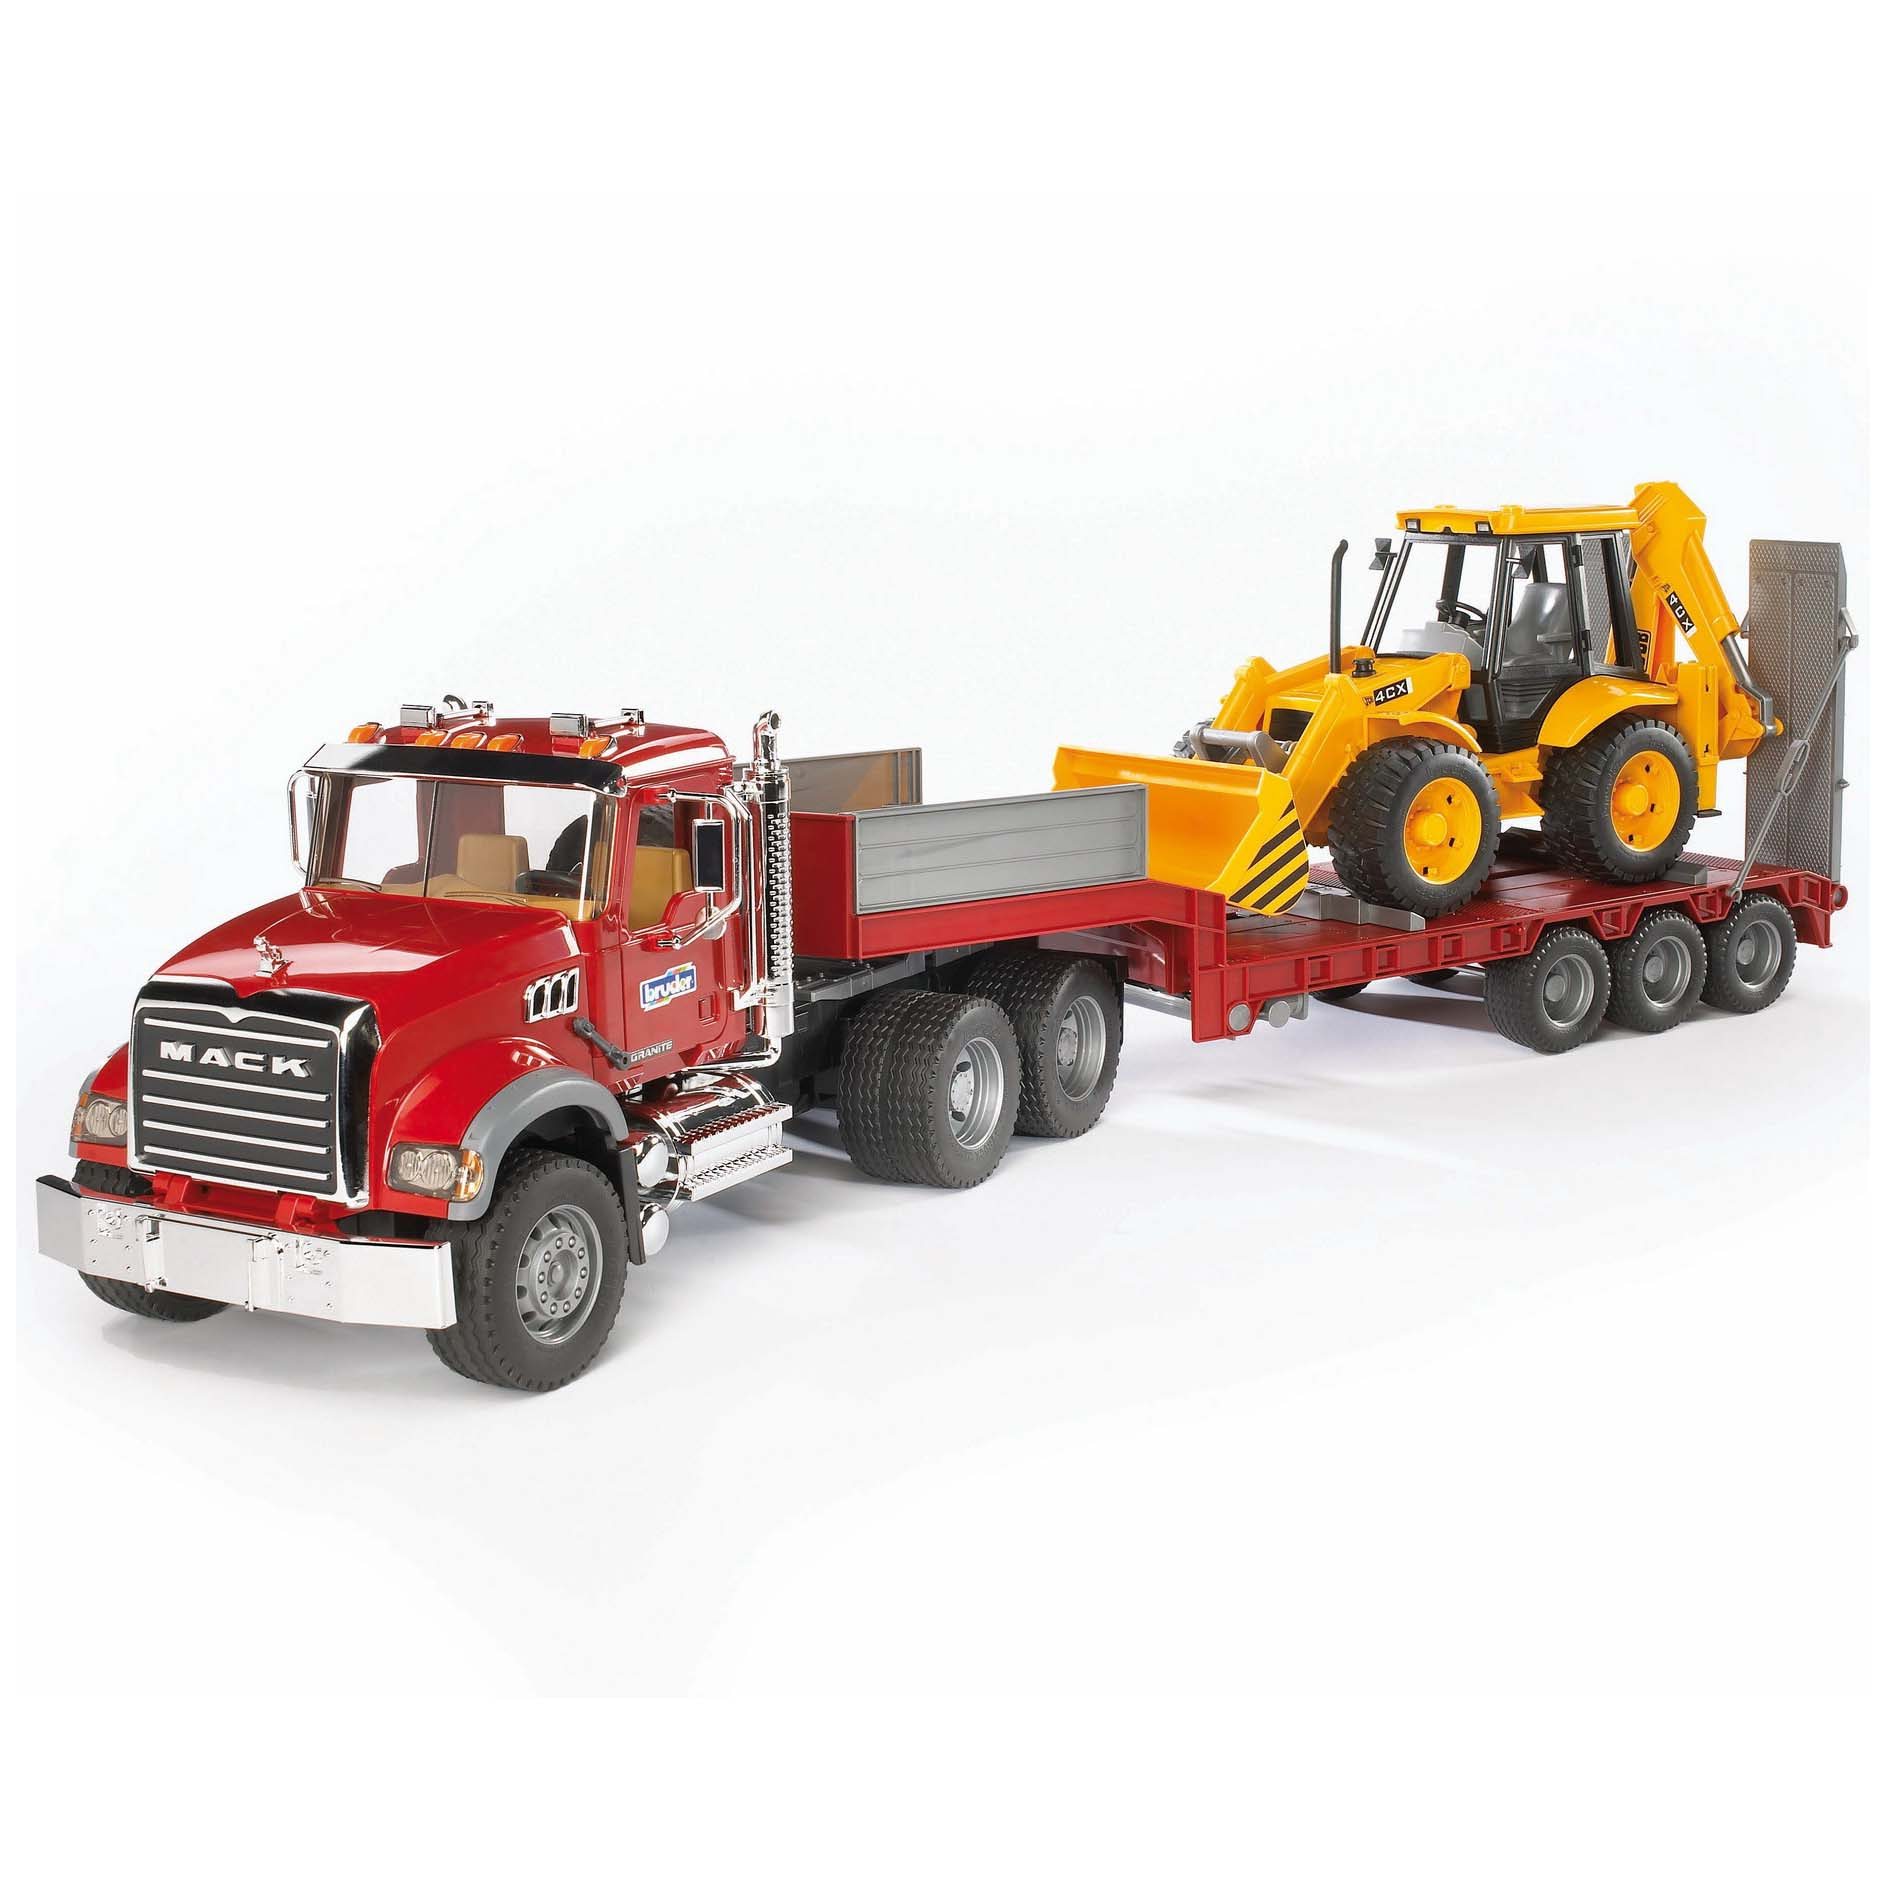 Bruder Toys Mack Granite Flatbed Truck w/ Low Loader & JCB Loader Backhoe 02813